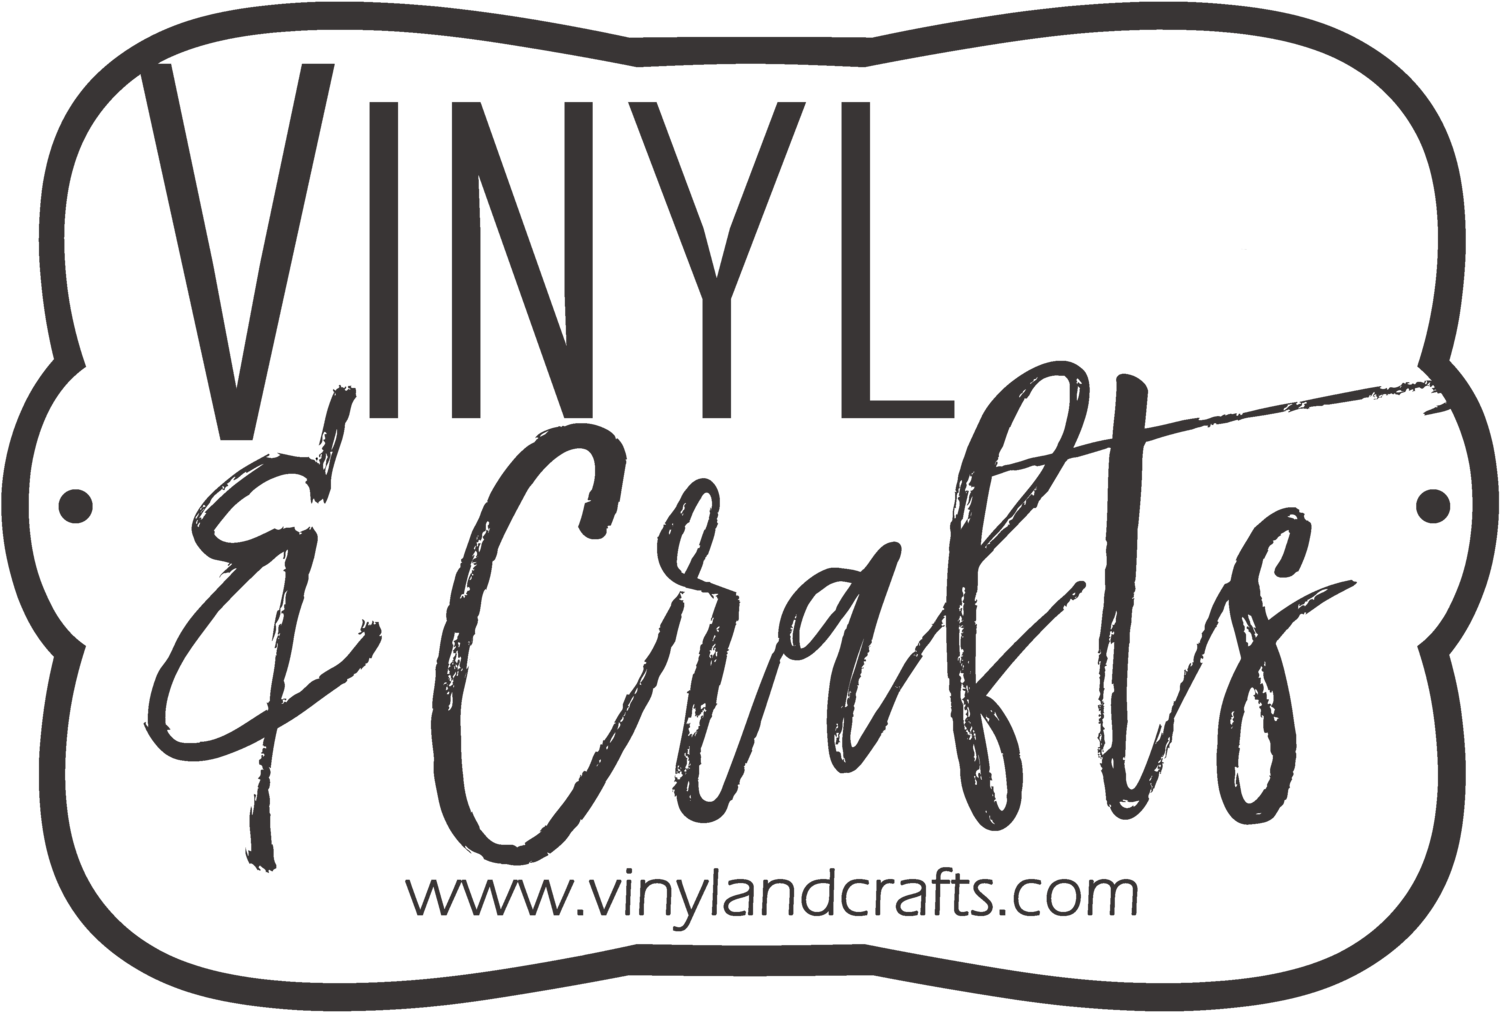 VINYL AND CRAFTS